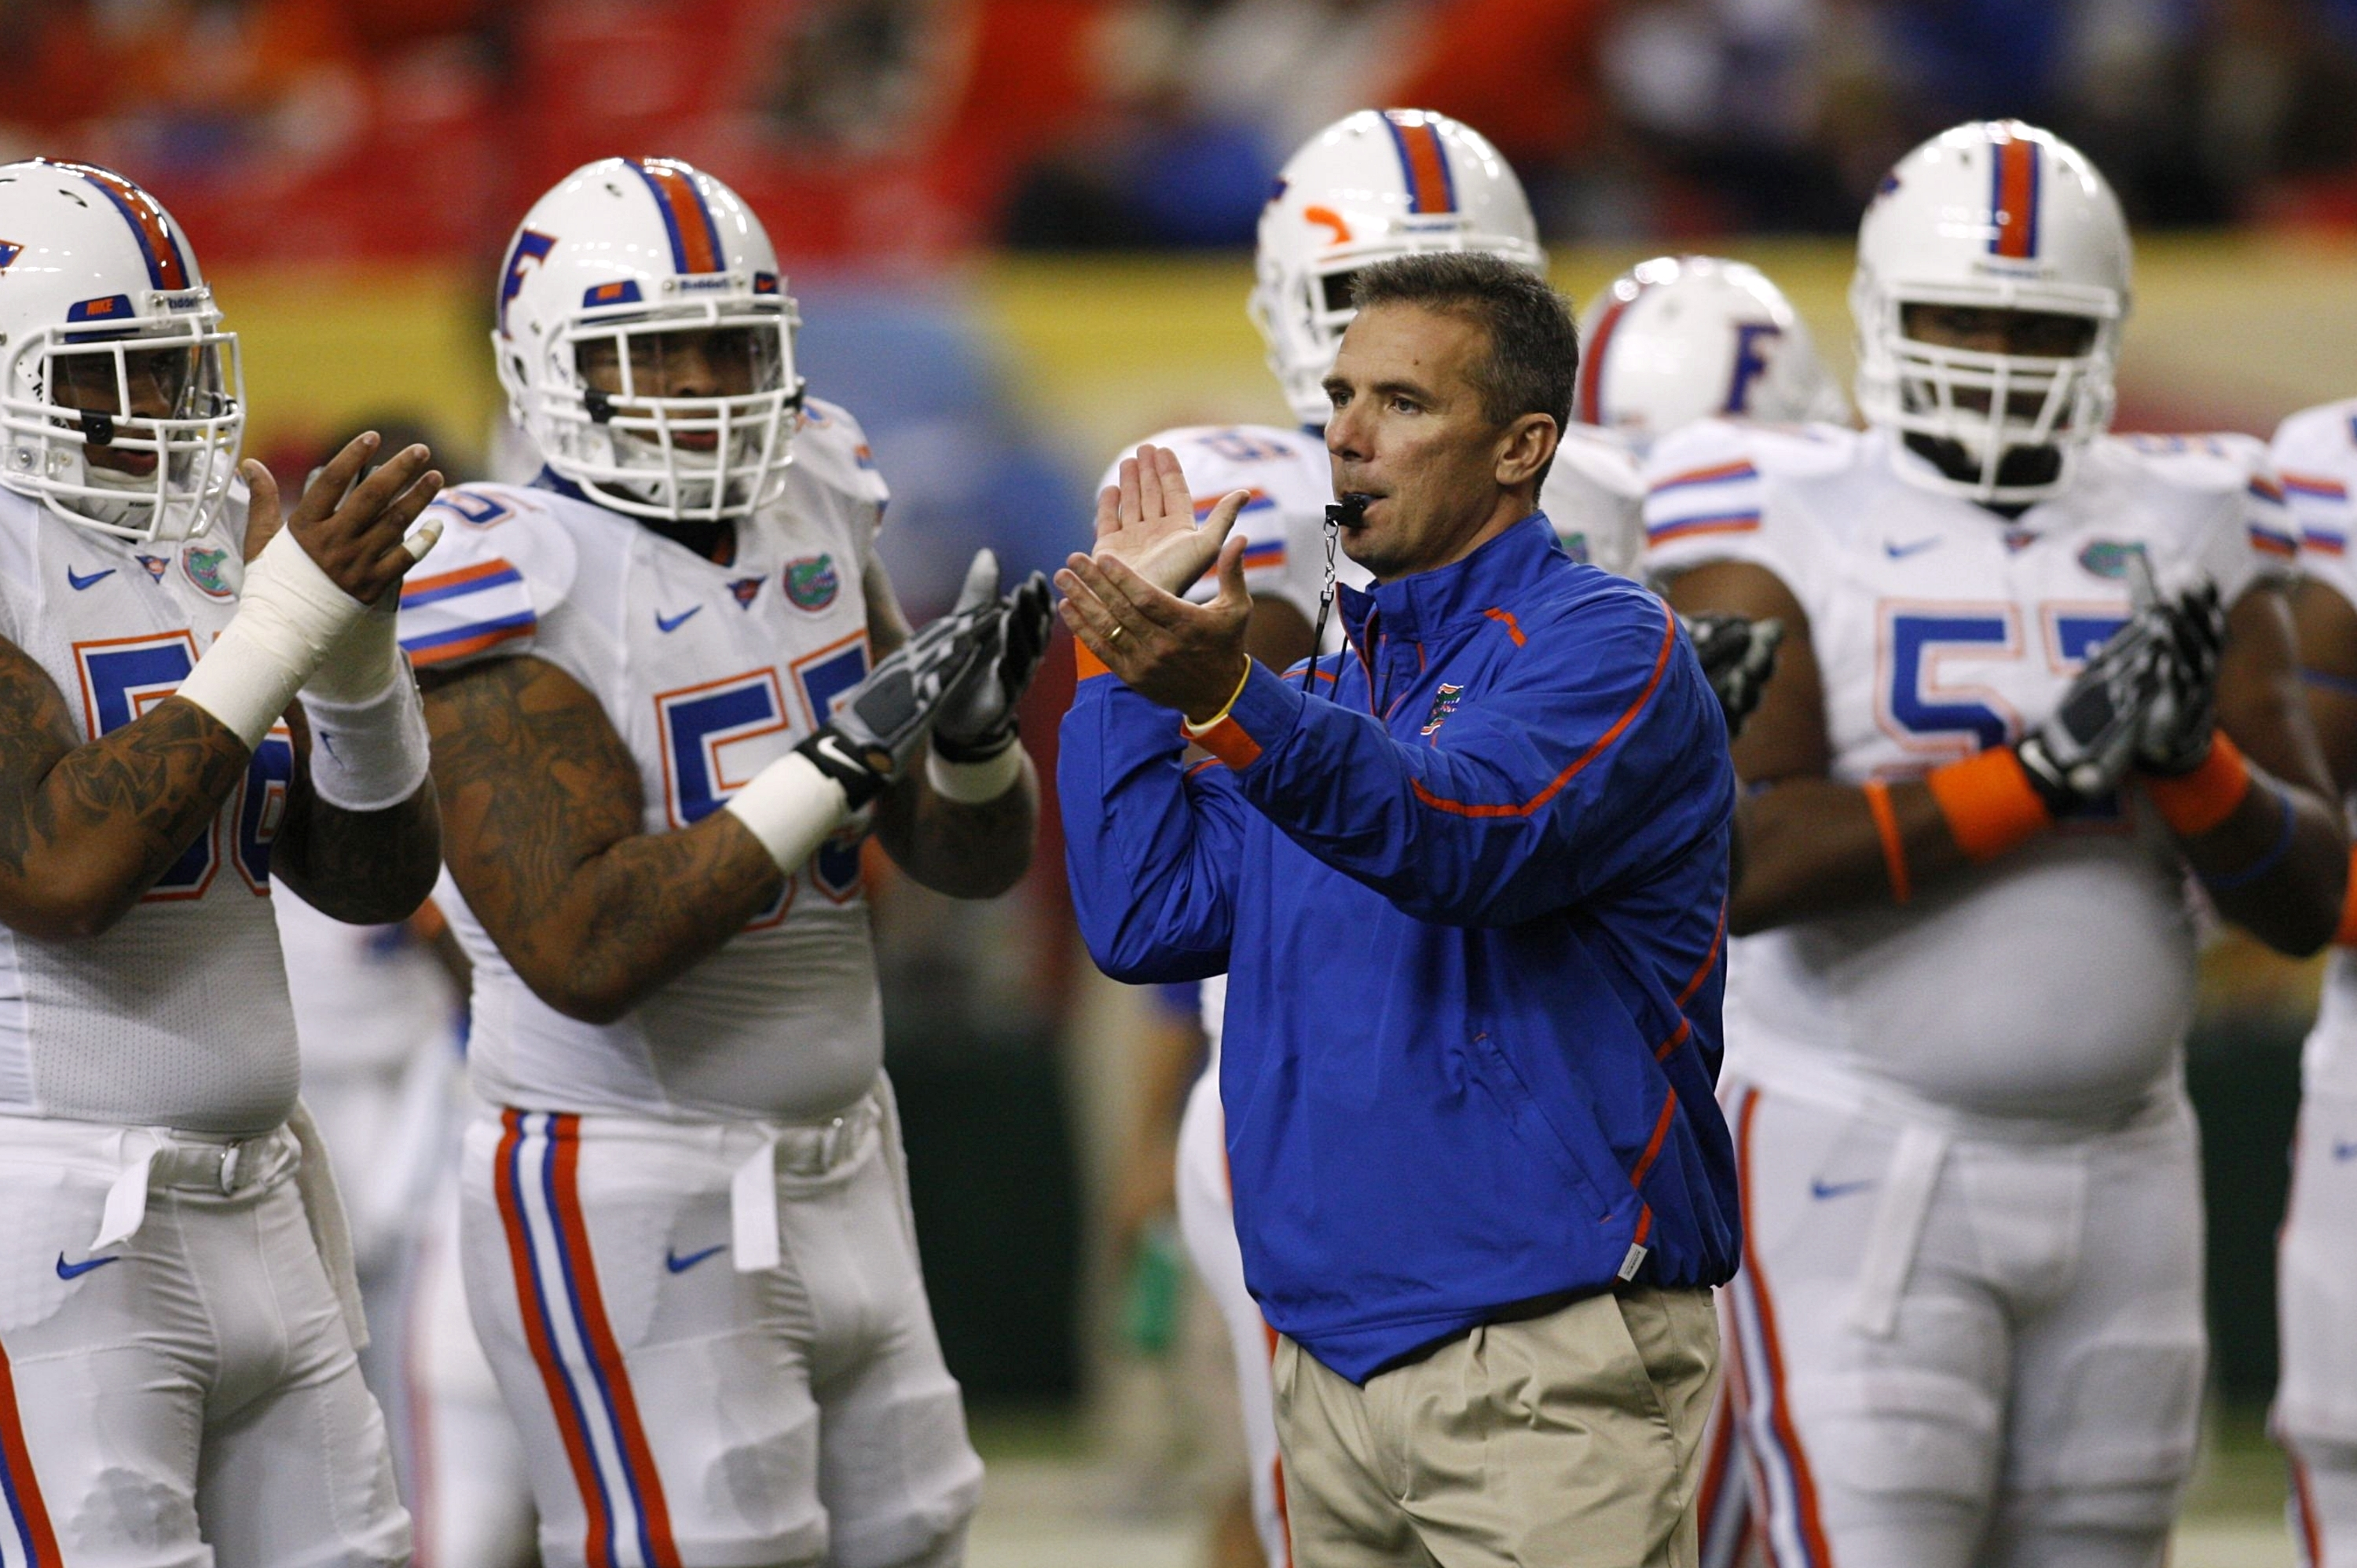 ATLANTA - DECEMBER 5:  Head coach Urban Meyer of the Florida Gators encourages his players during warm ups against the Alabama Crimson Tide during the SEC Championship game at Georgia Dome on December 5, 2009 in Atlanta, Georgia.  (Photo by Chris Graythen